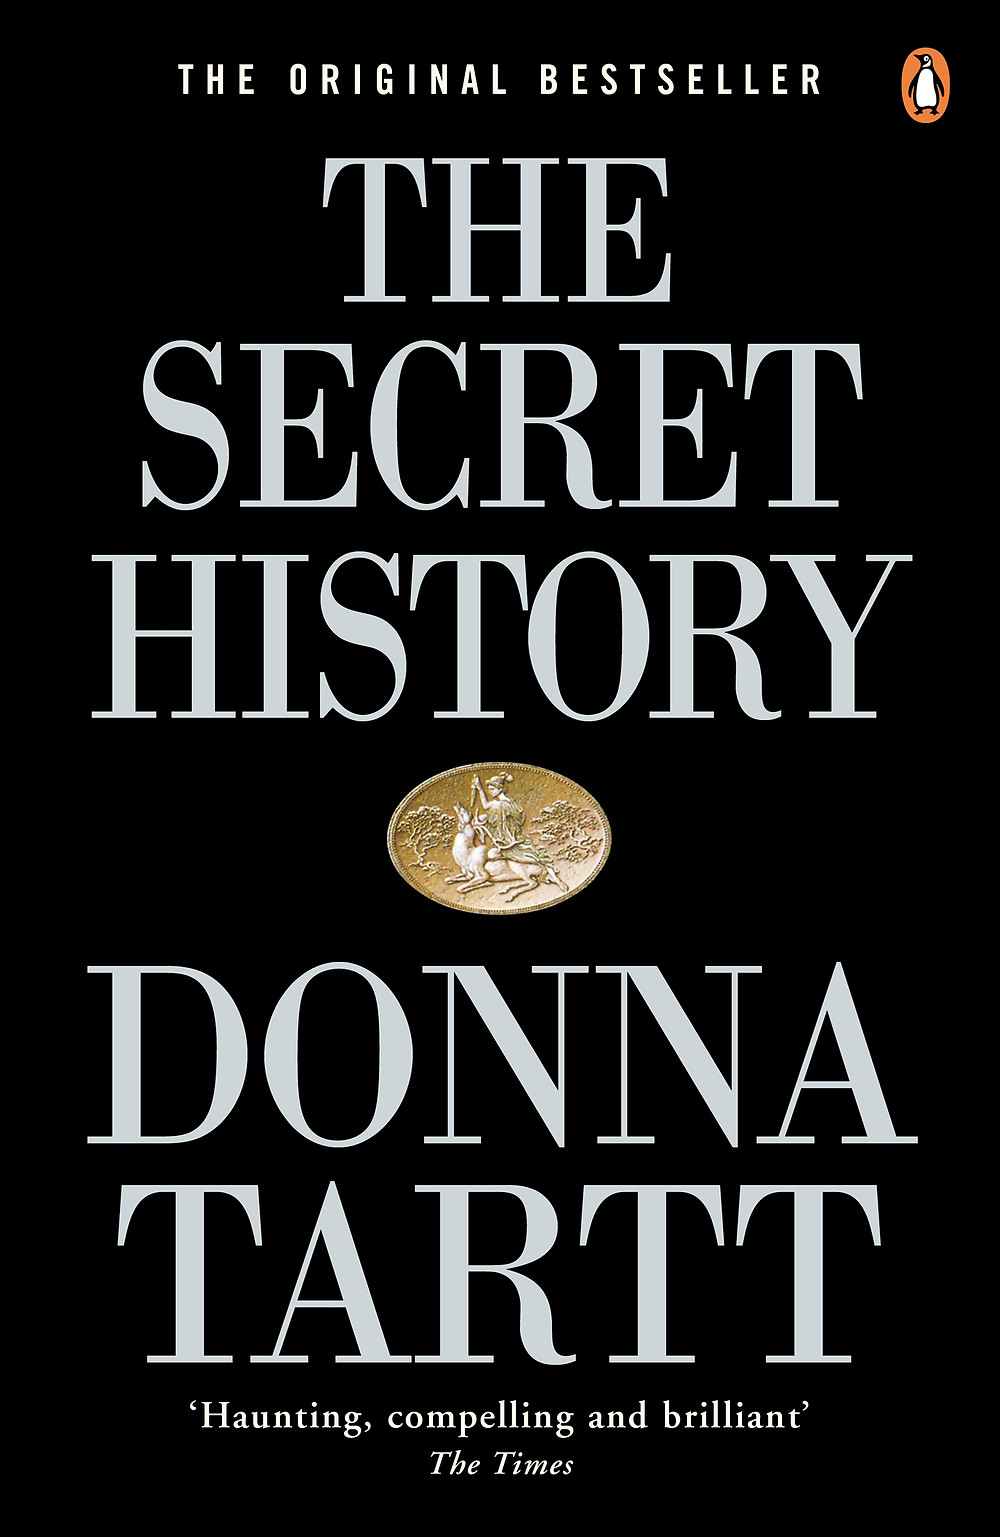 The Secret History by Donna Tartt (Author) Description Donna Tartt, winner of the 2014 Pulitzer Prize for her most recent novel, The Goldfinch, established herself as a major talent with The Secret History, which has become a contemporary classic. Under the influence of their charismatic classics professor, a group of clever, eccentric misfits at an elite New England college discover a way of thinking and living that is a world away from the humdrum existence of their contemporaries. But when they go beyond the boundaries of normal morality their lives are changed profoundly and forever, and they discover how hard it can be to truly live and how easy it is to kill. The Book Slut book reviews, Publisher Vintage Publish Date April 13, 2004 Pages 576 Dimensions 5.2 X 1.1 X 7.9 inches | 0.95 pounds Language English Type Paperback EAN/UPC 9781400031702 BISAC Categories: Literary